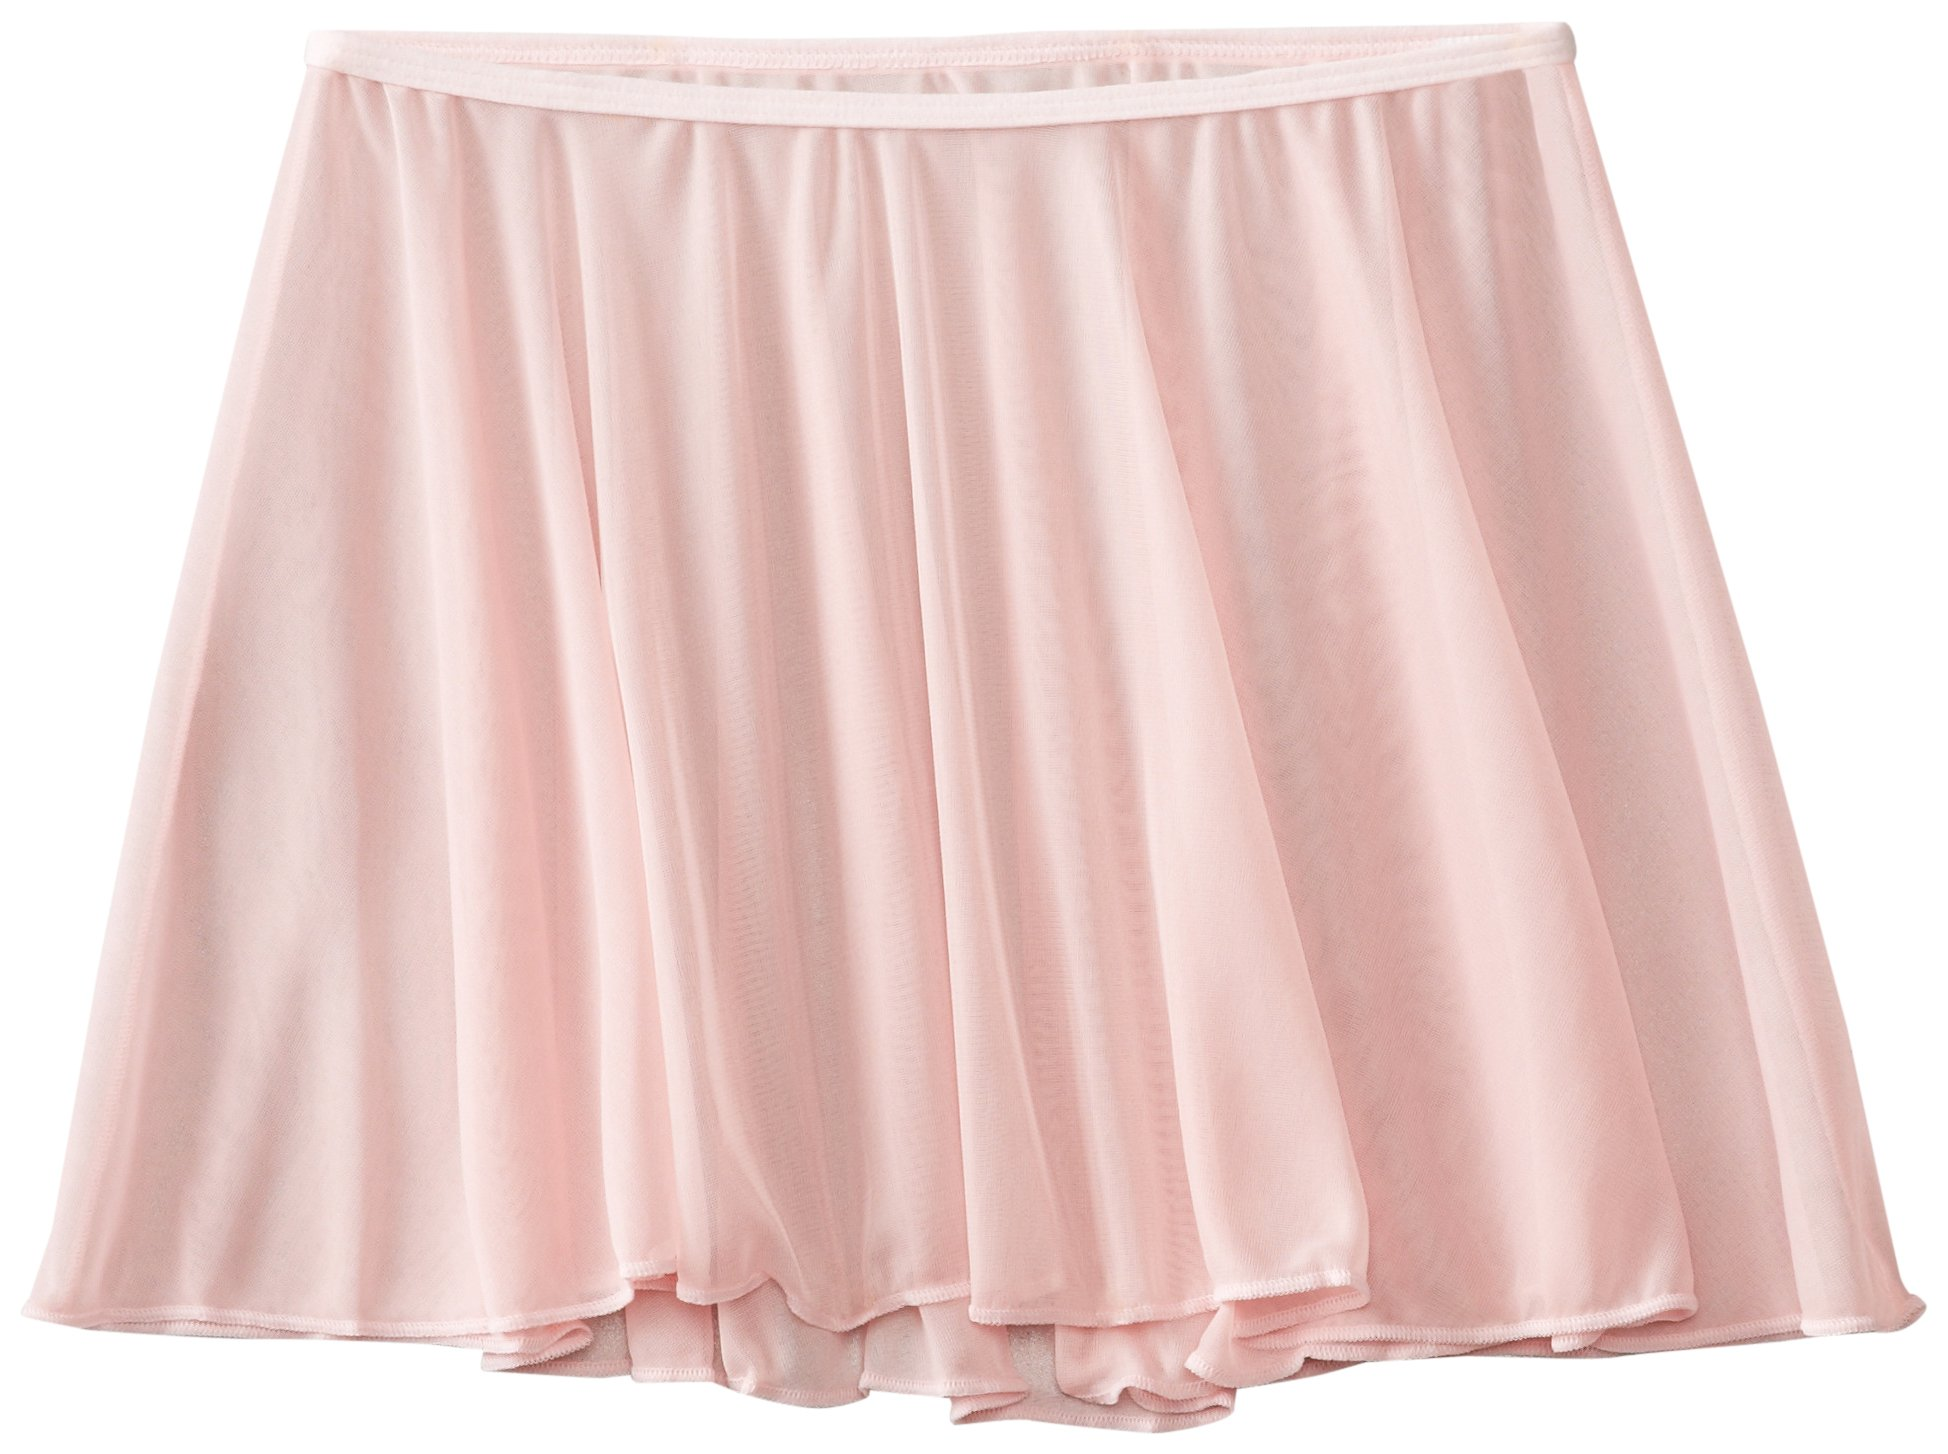 Clementine Apparel Girls' Little (2-7) Chiffon Ruffle Pull On Wavy Dance Ballet Skirt Dancwear Costumes, Light Pink, Large/X-Large by Clementine Apparel